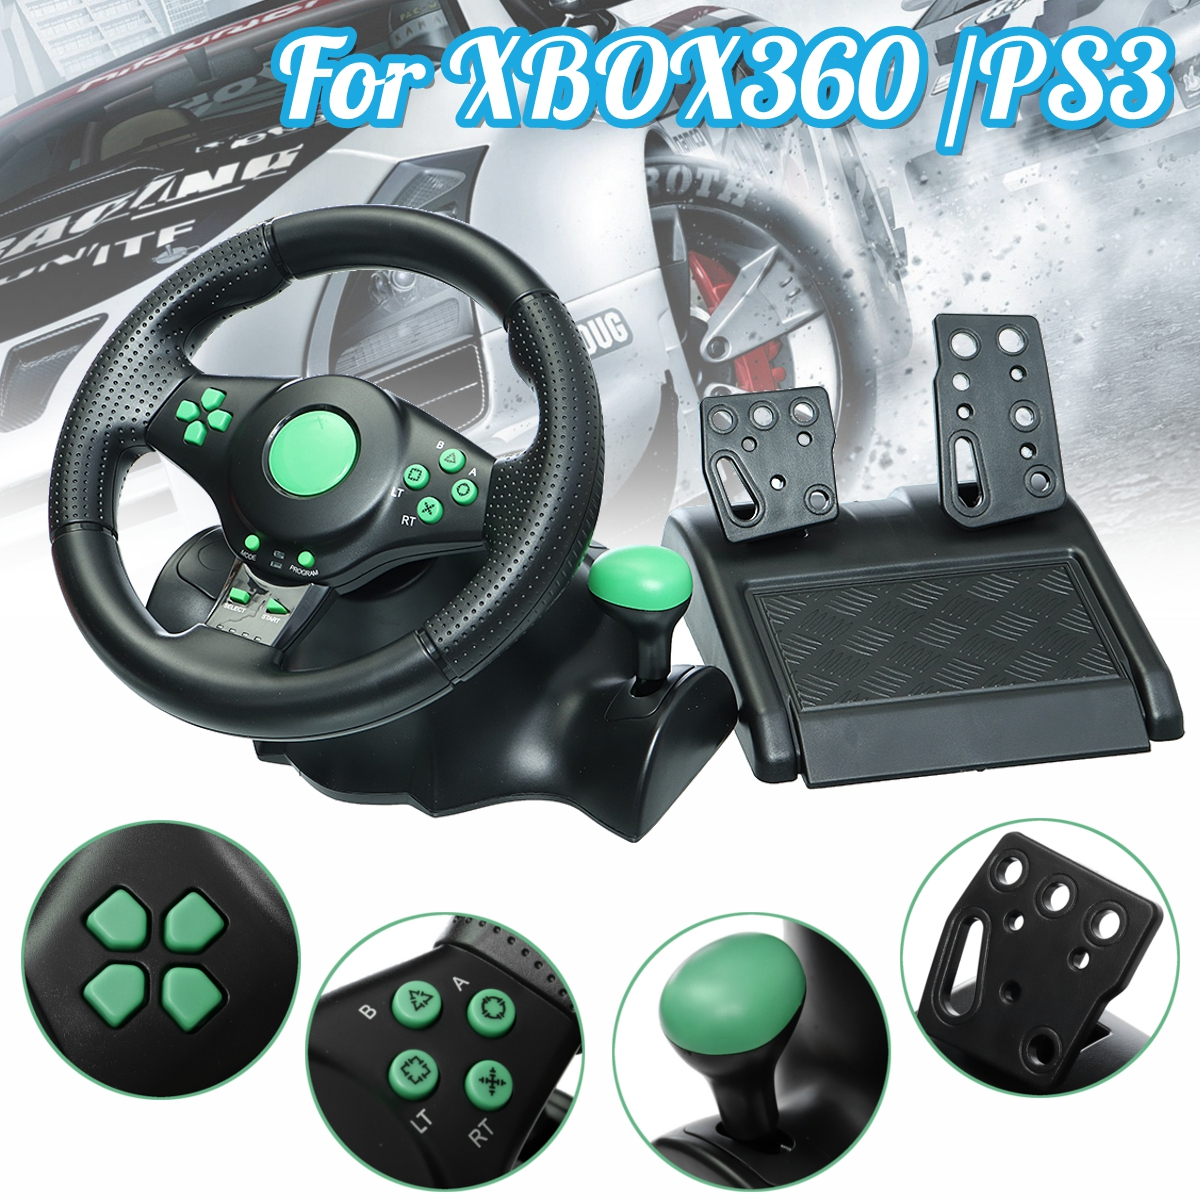 все цены на Feedback Racing Steering Wheel + Pedal Set Racing Gaming Driving PC for ps3